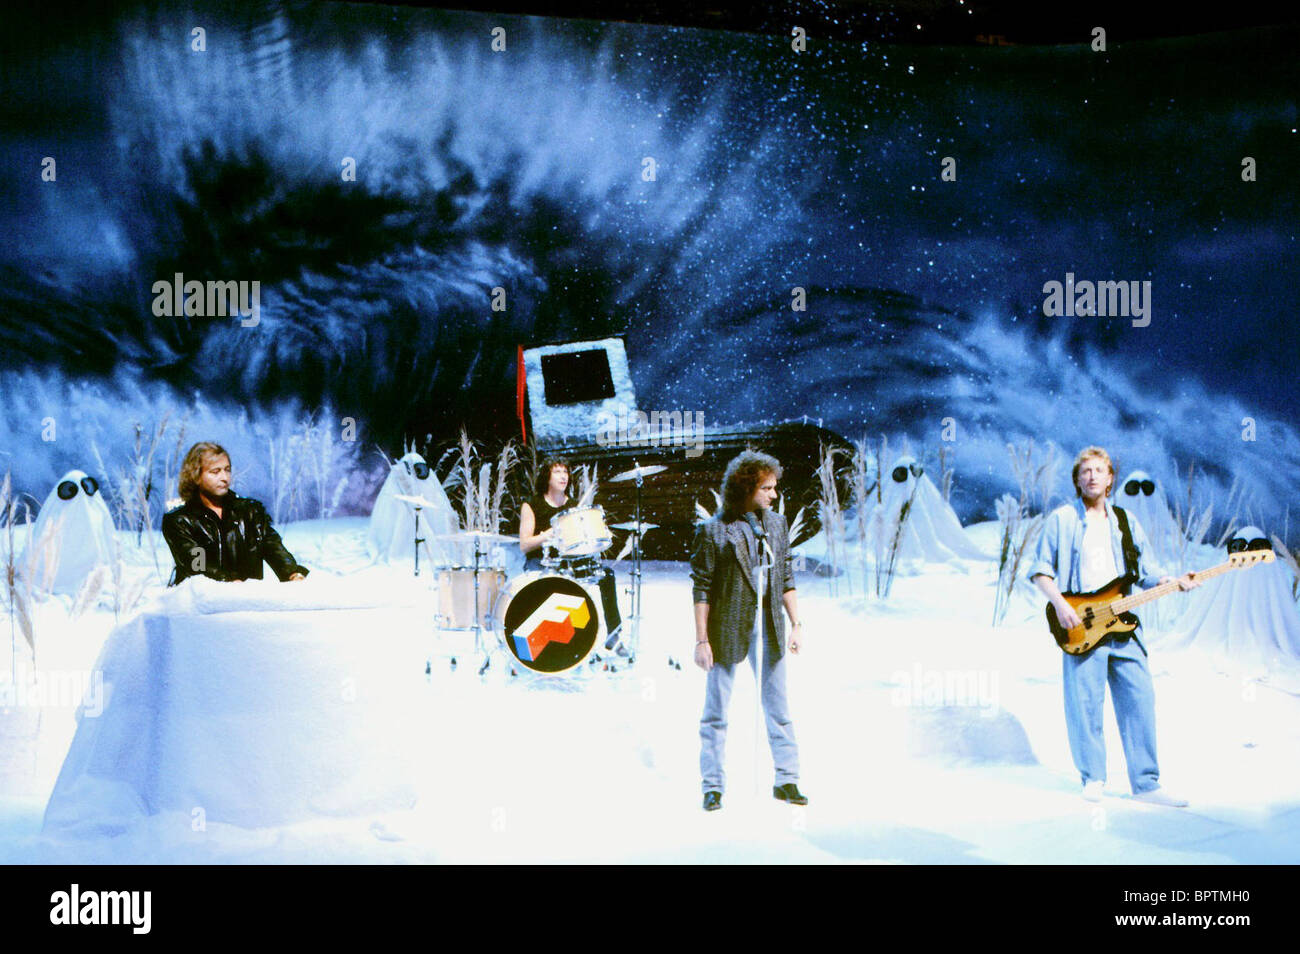 FOREIGNER FOREIGNER ROCK BAND (1985) - Stock Image